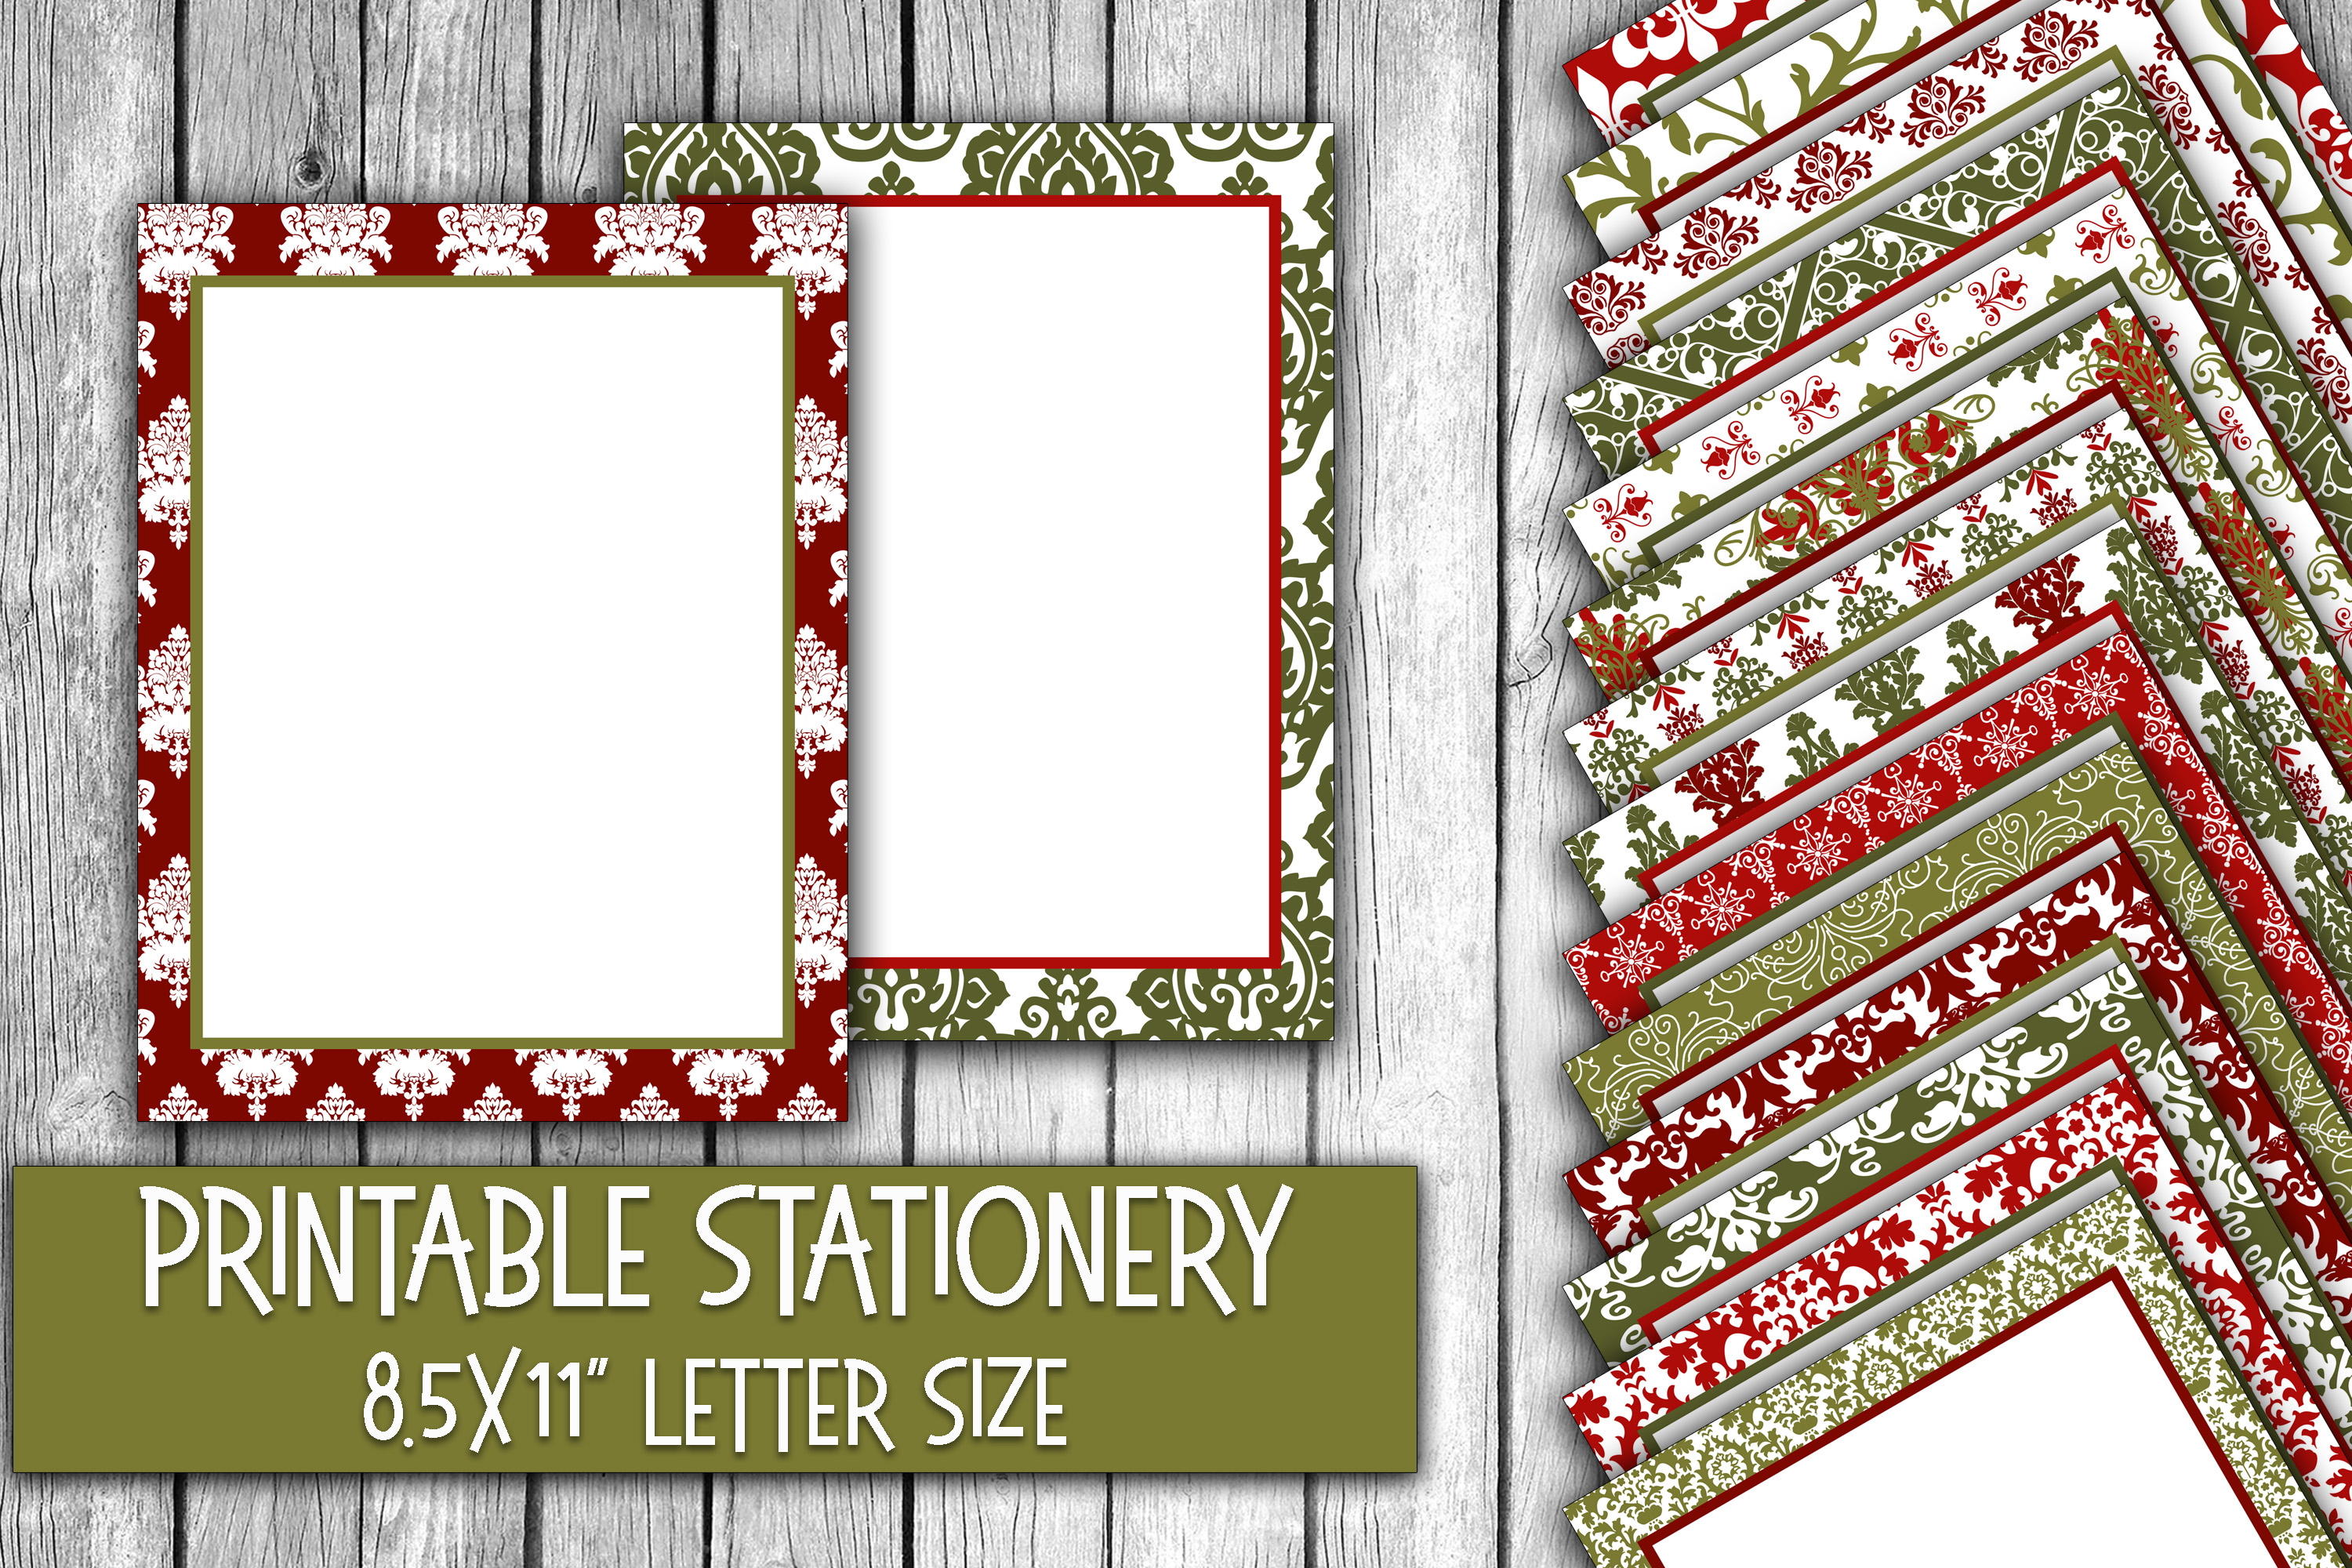 Christmas Stationery - Red and Green Christmas Damask Paper example image 1